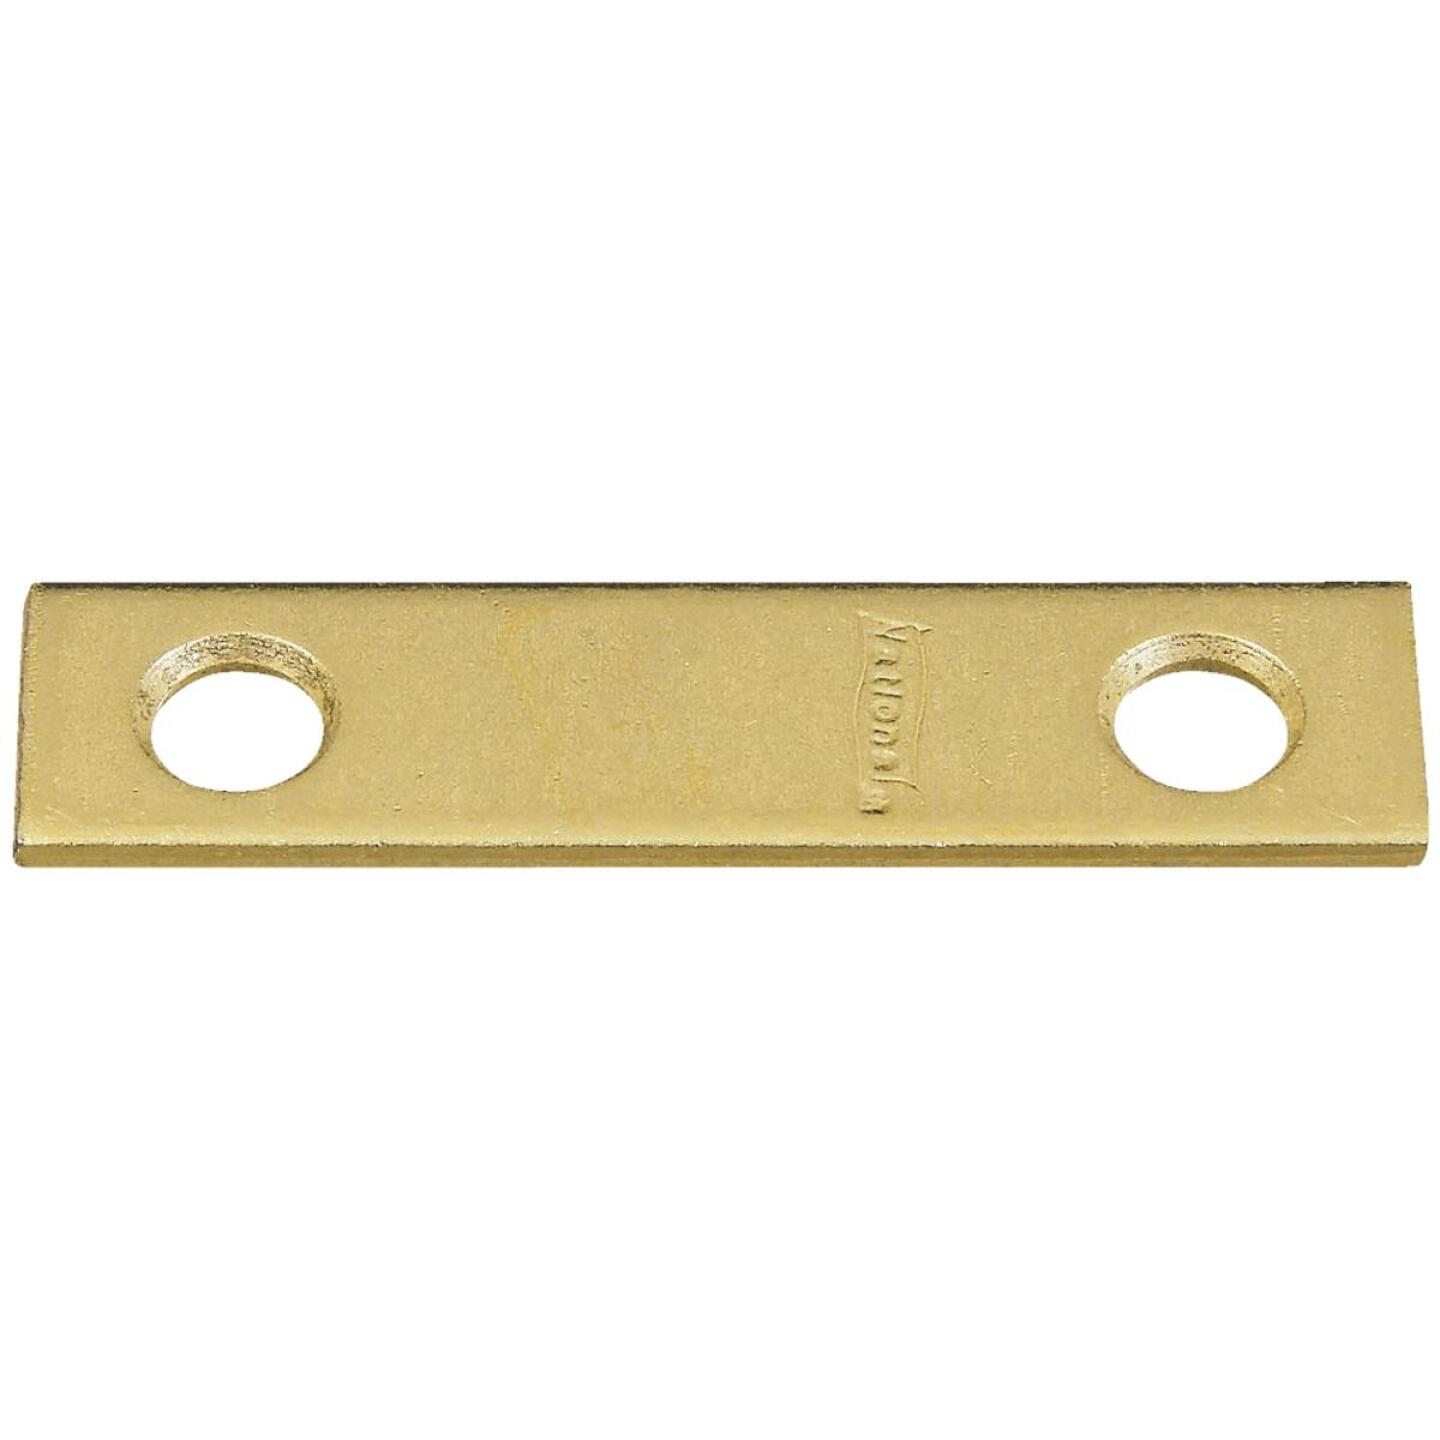 National Catalog 118 2 In. x 1/2 In. Brass Steel Mending Brace (4-Count) Image 1